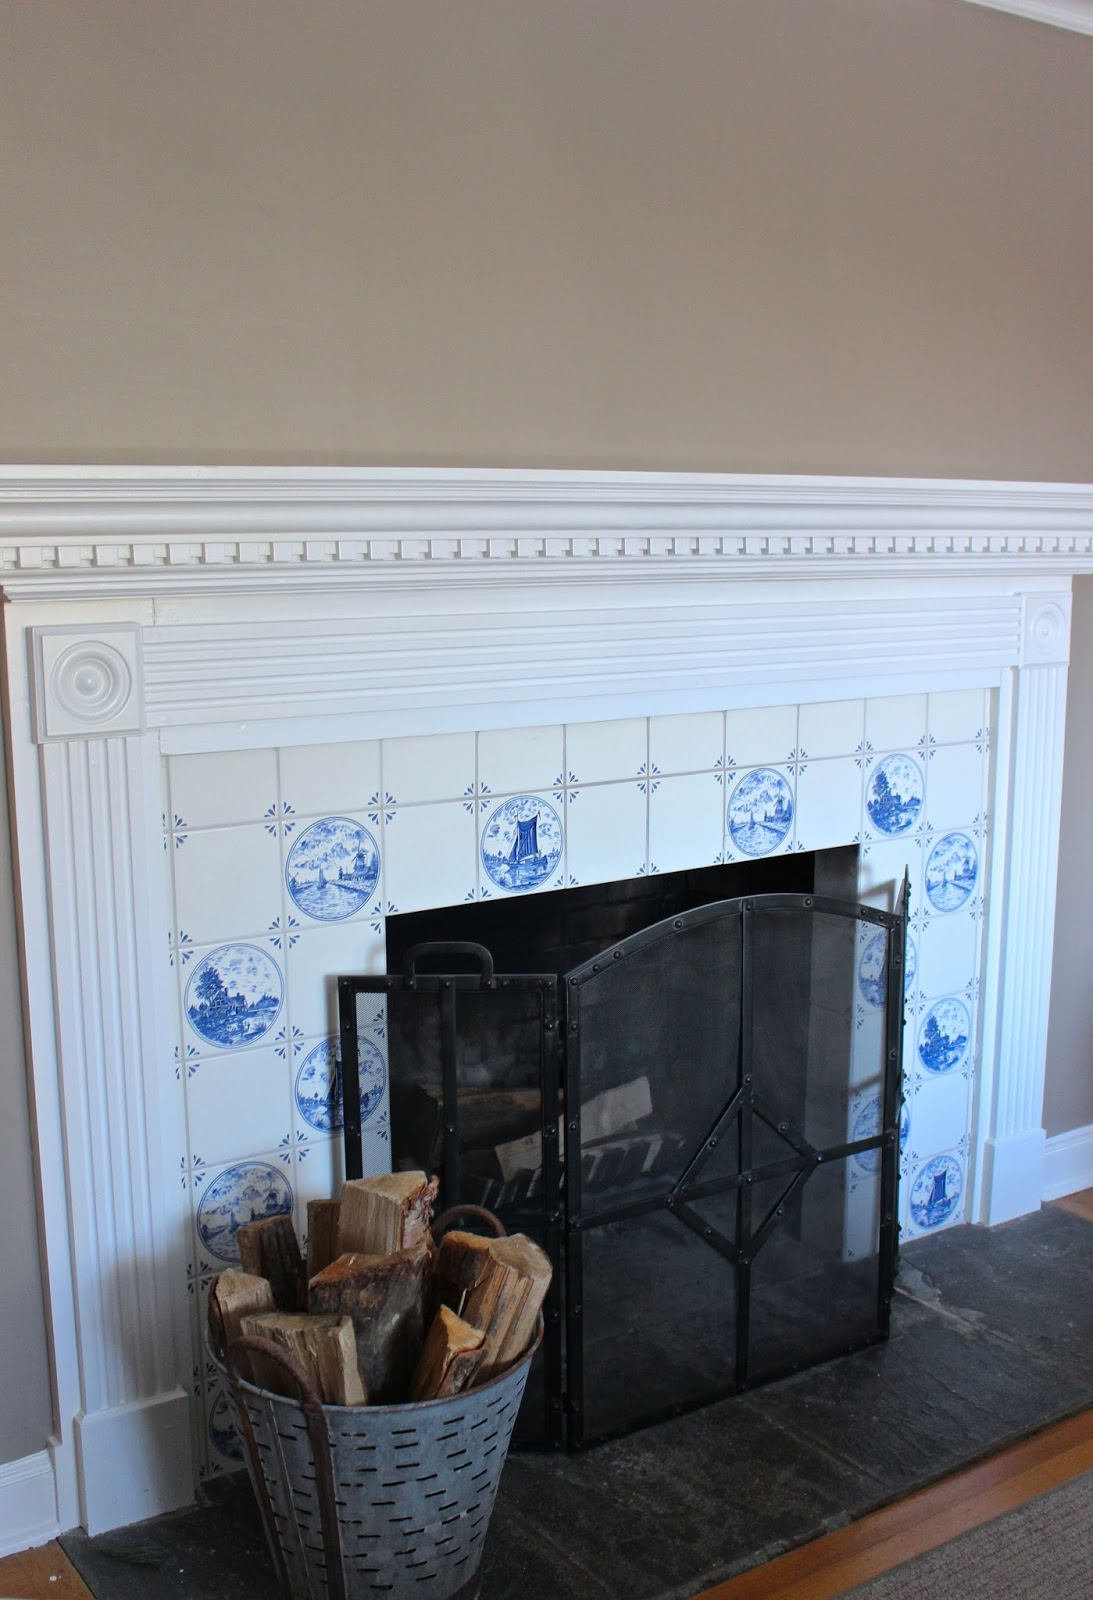 Blue Fireplace My Blue & White Fireplace Tile - Should It Stay Or Go